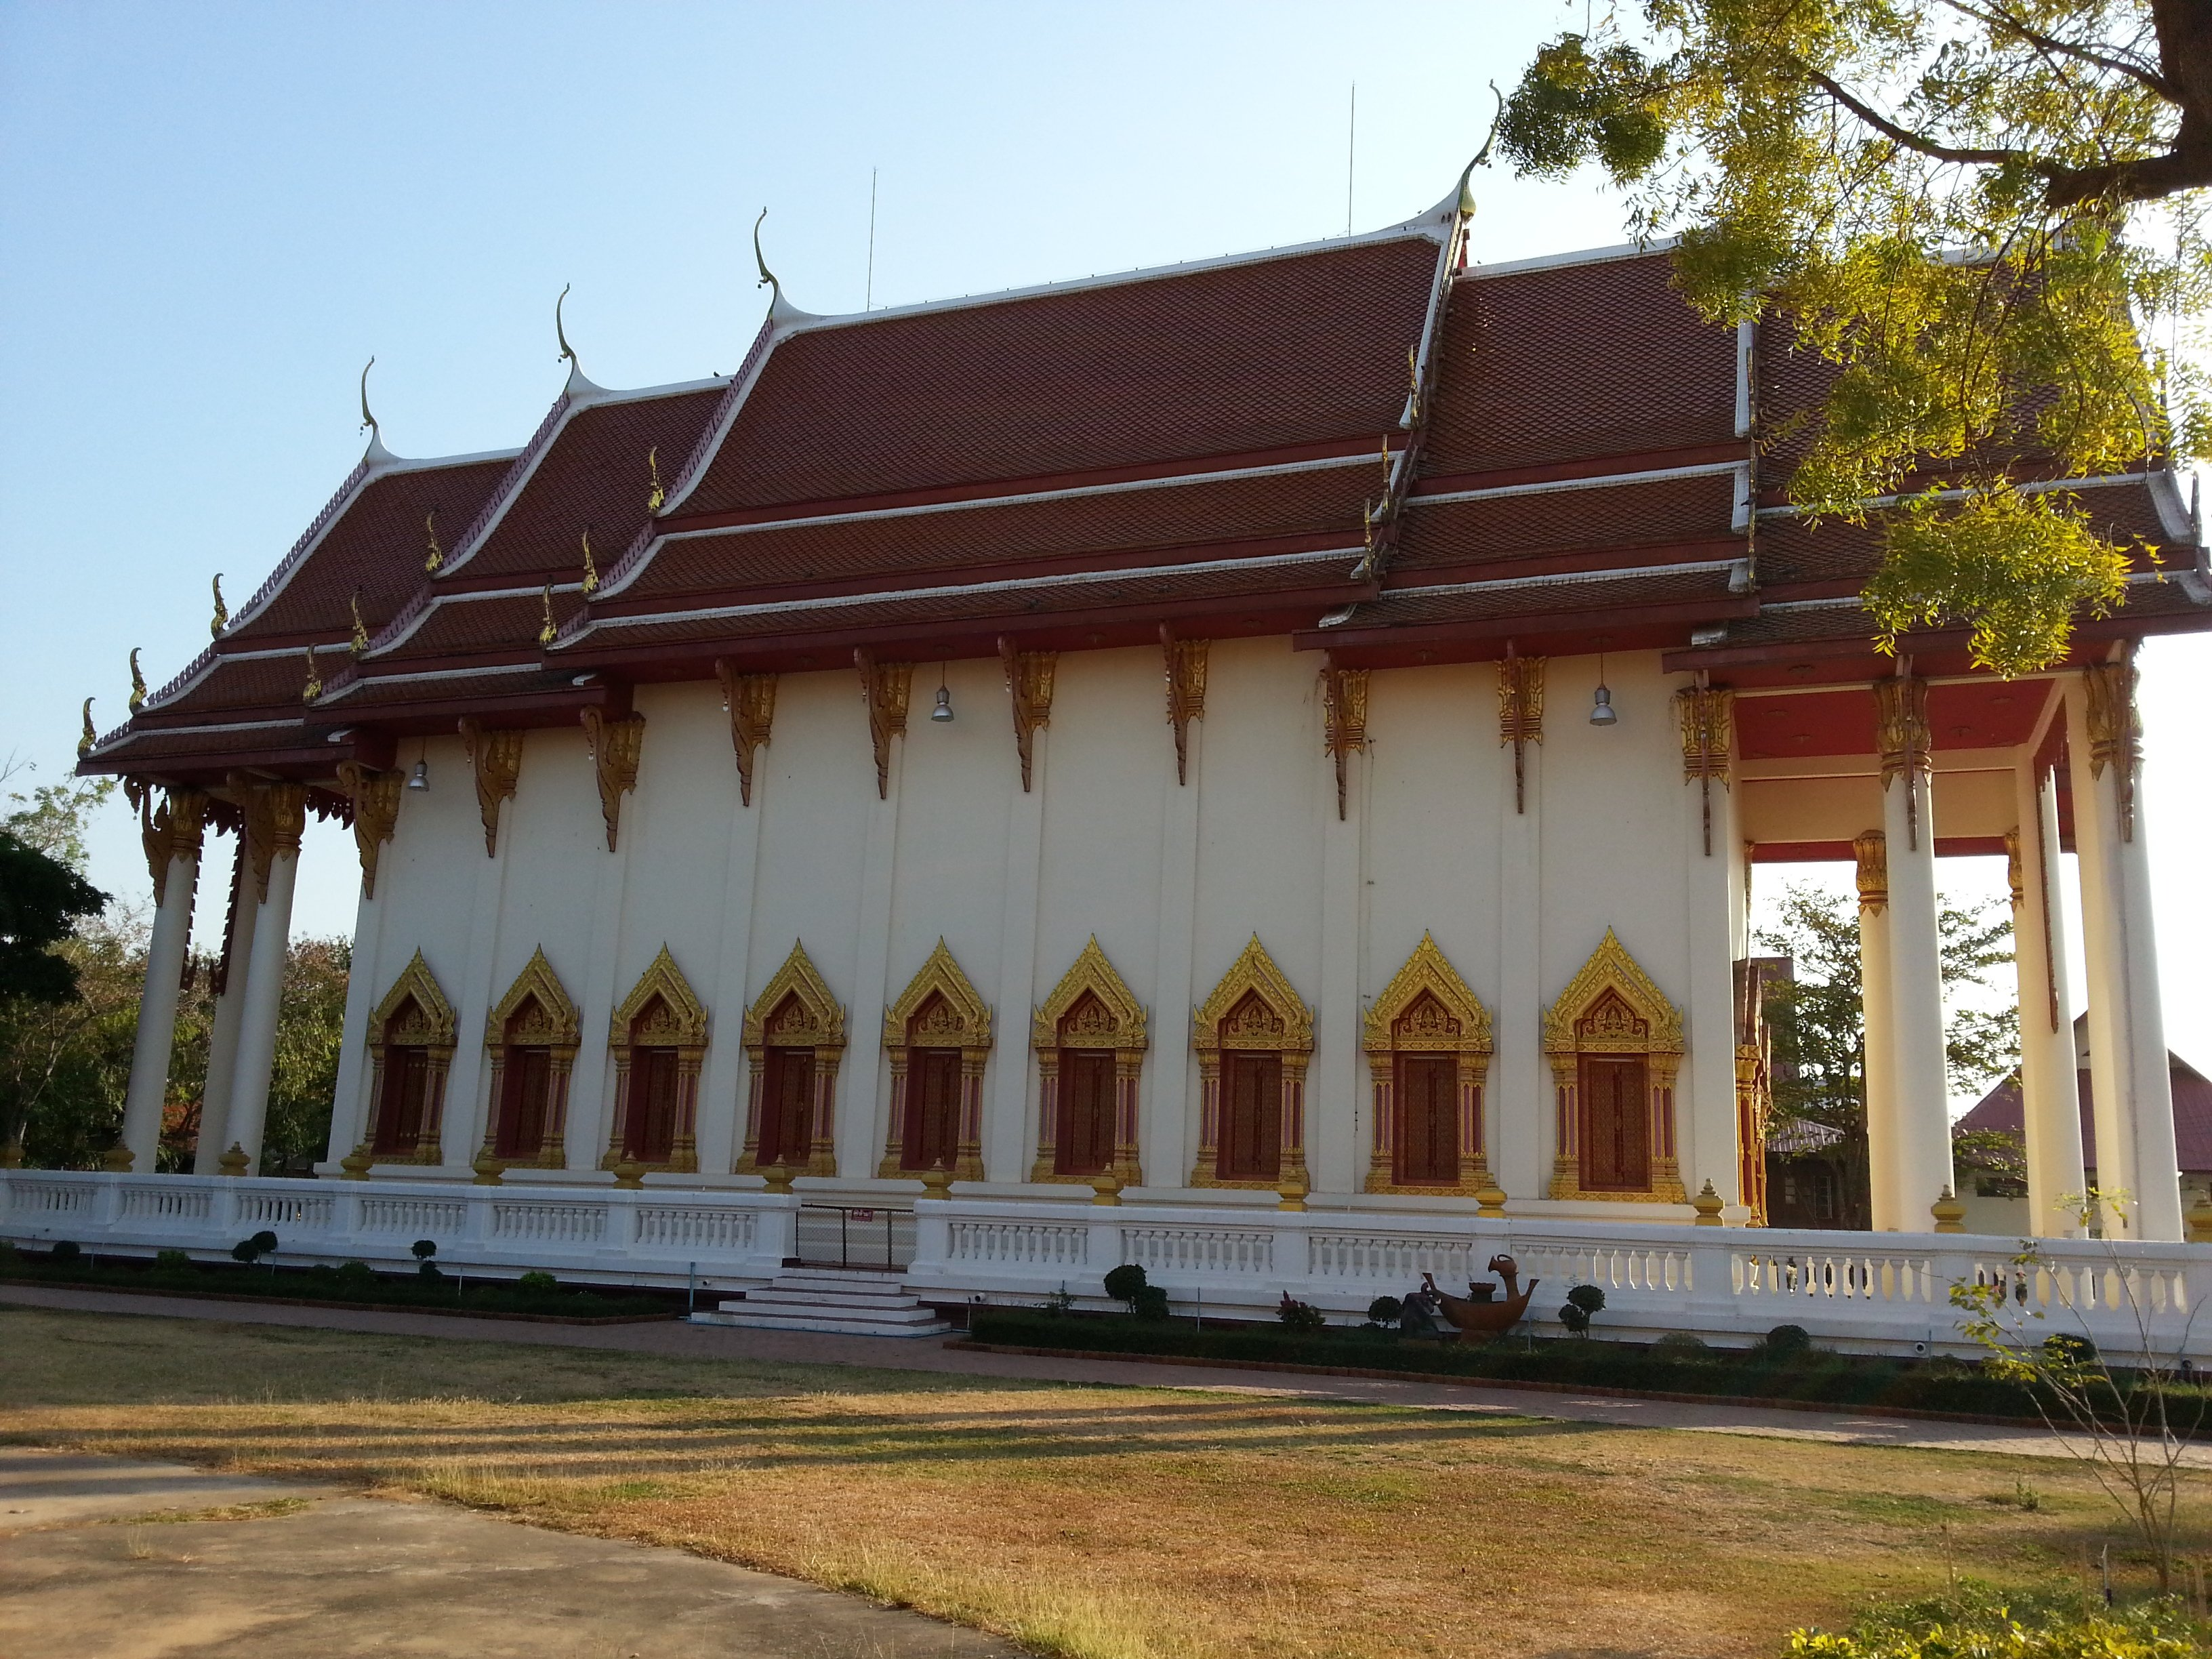 Ordination hall at Wat Pothisomphon